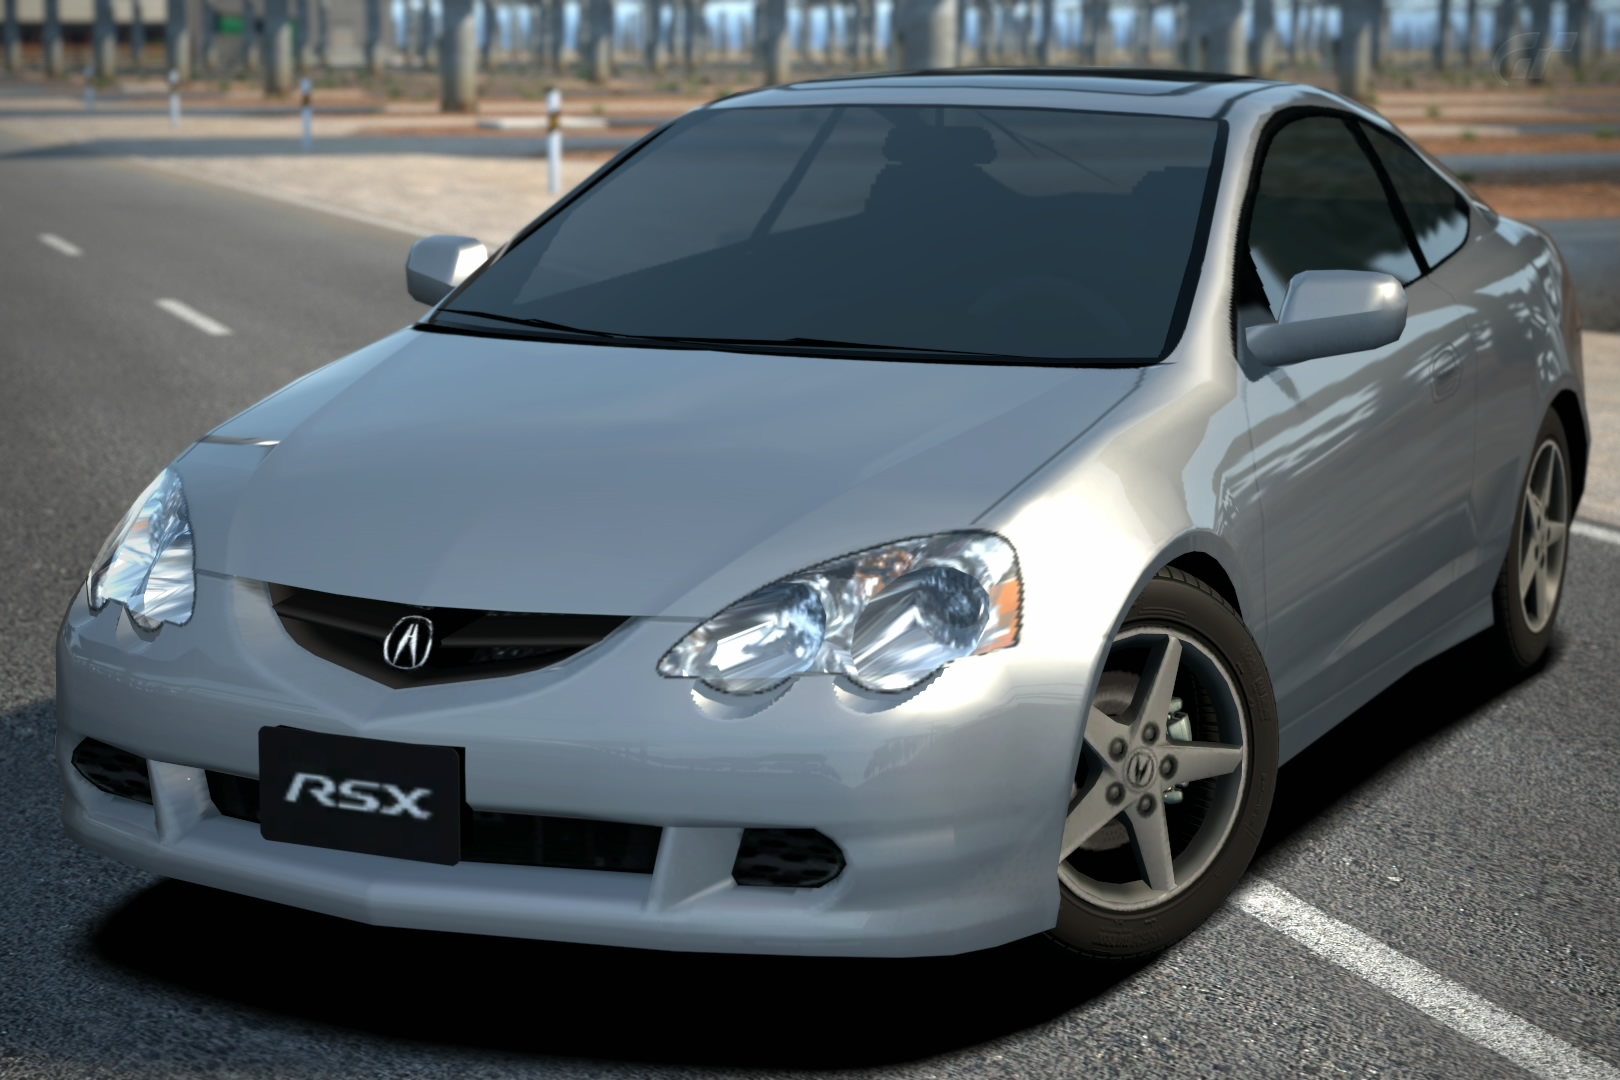 2004 Acura Rsx Type S >> Acura Rsx Type S 04 Gran Turismo Wiki Fandom Powered By Wikia